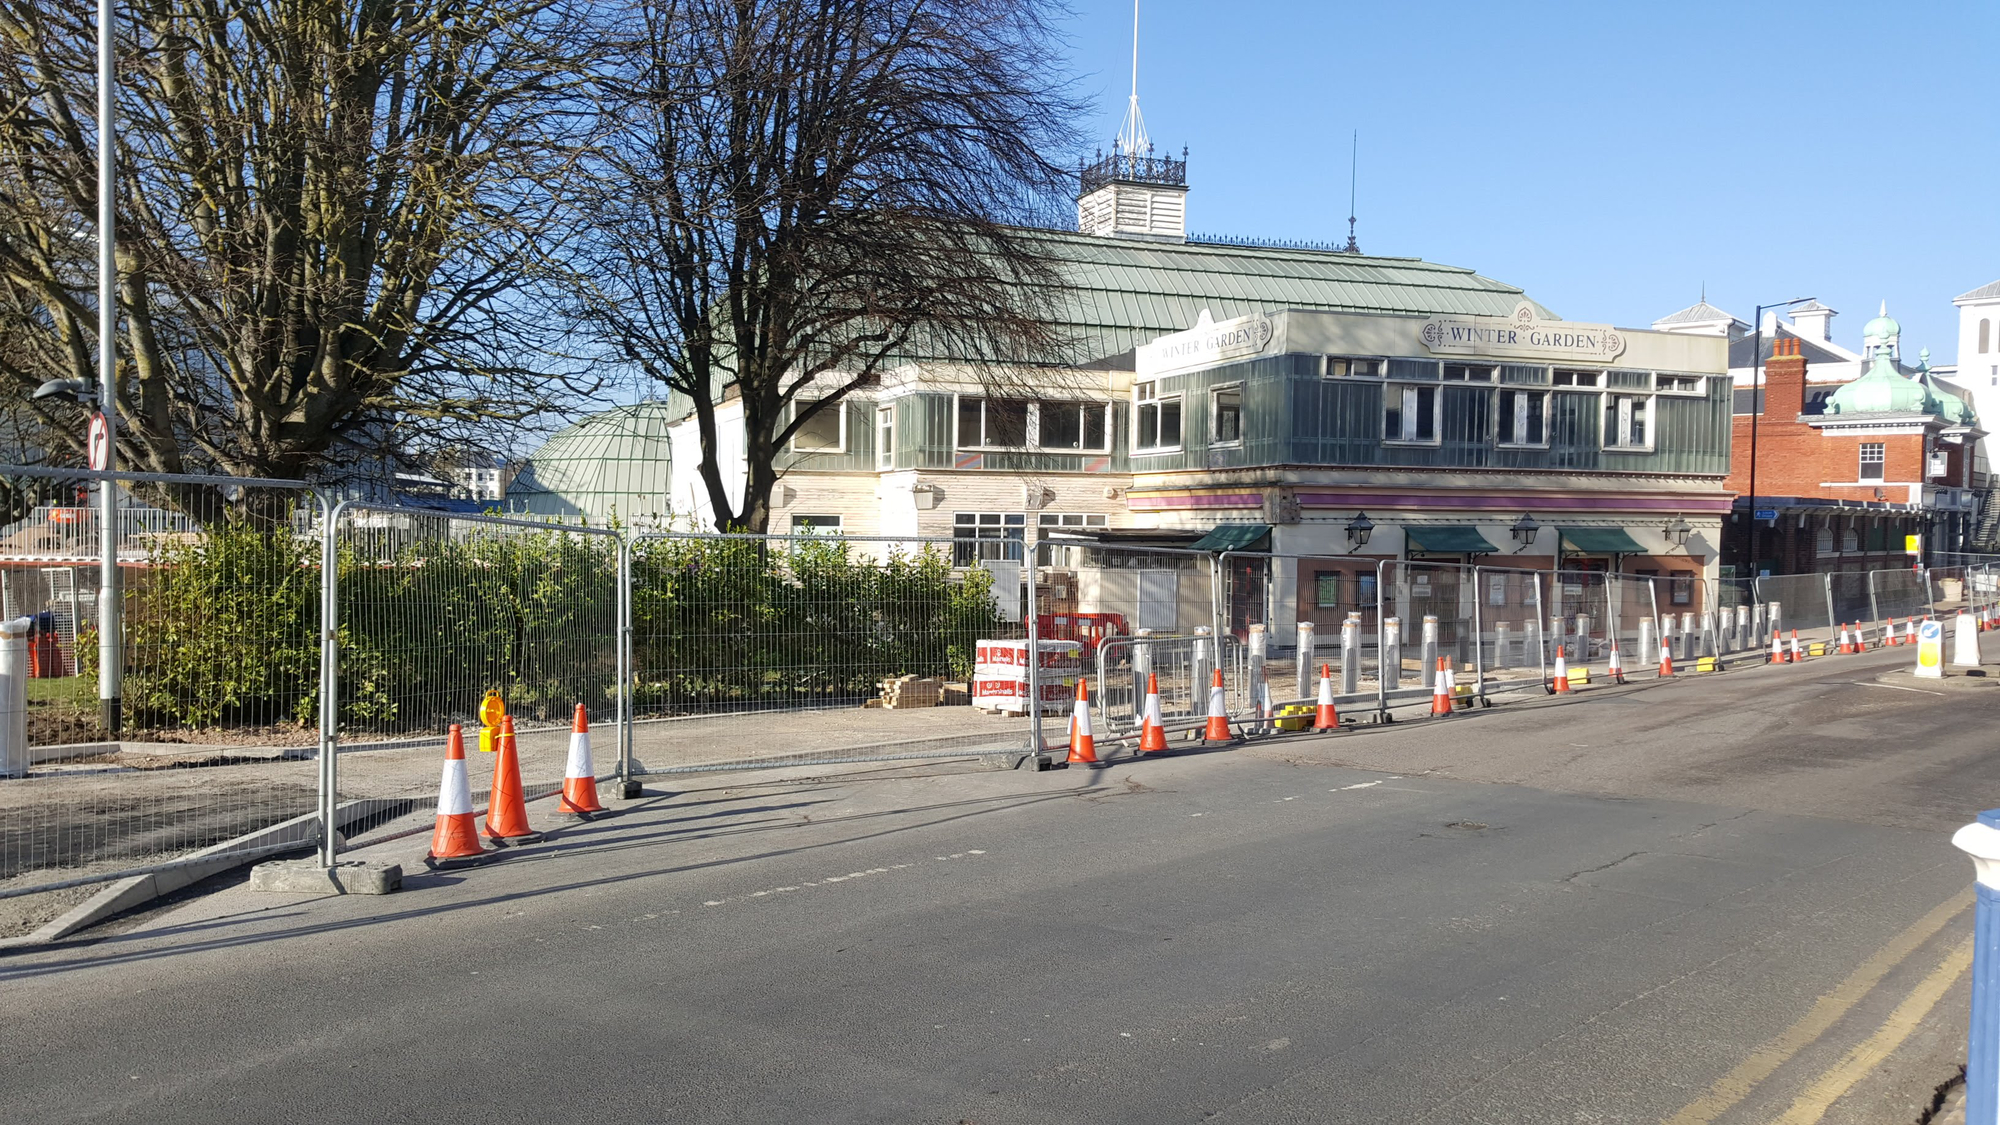 Eastbourne Winter Gardens March 2019